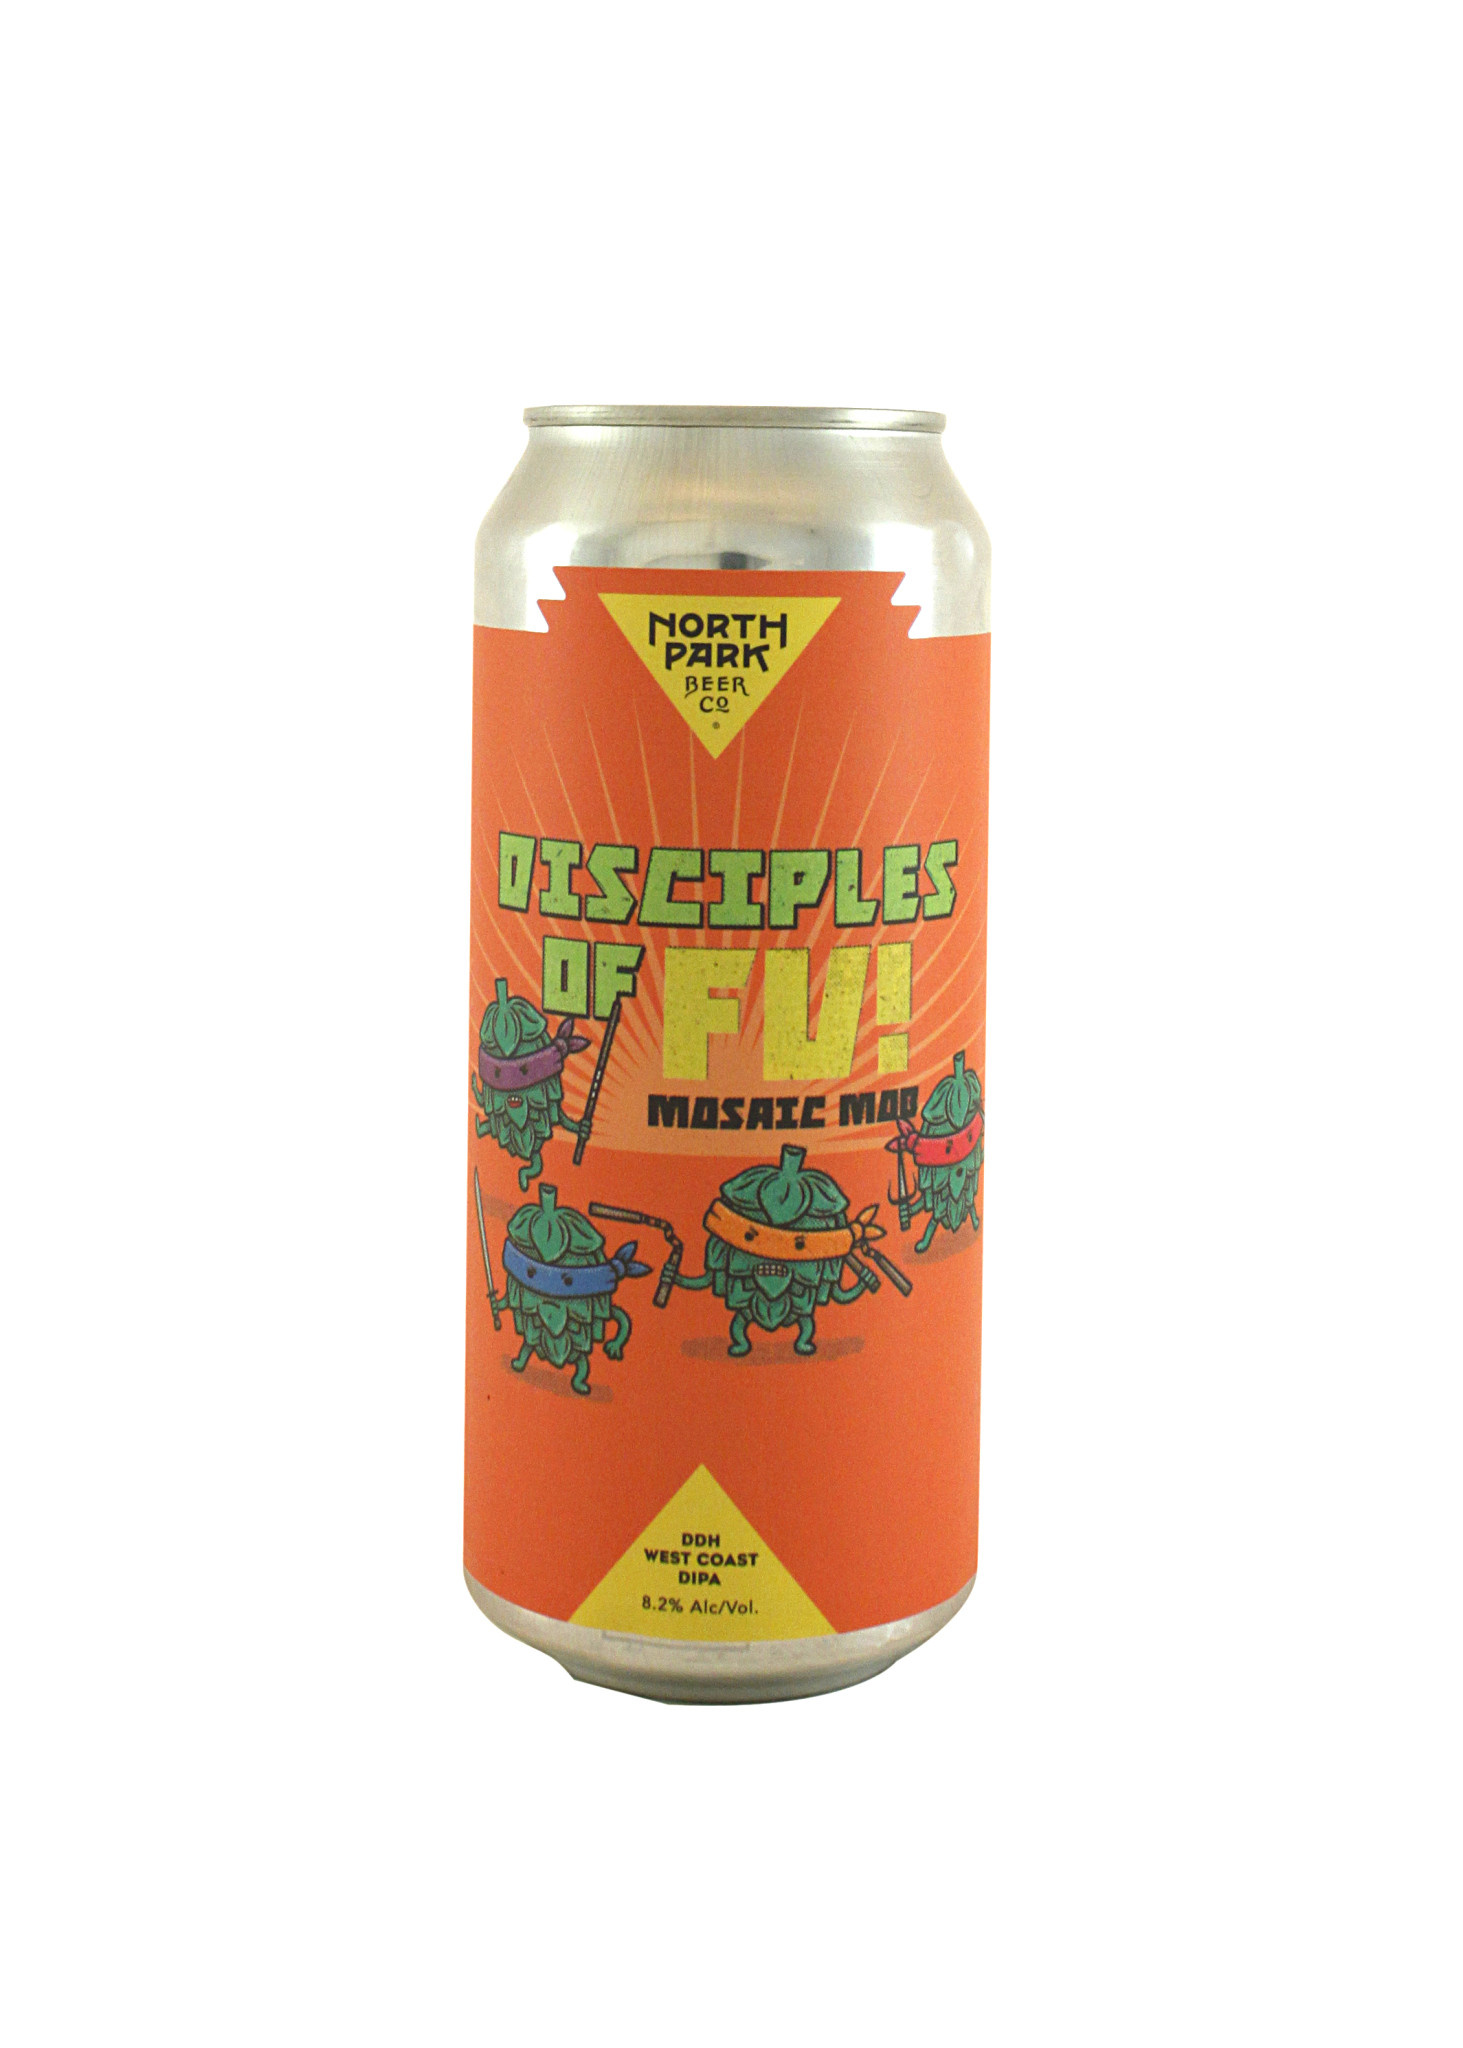 """North Park Beer Co """"Disciples of Fu!-Mosaic Mob"""" DDH West Coast IPA16oz can-San Diego, CA"""